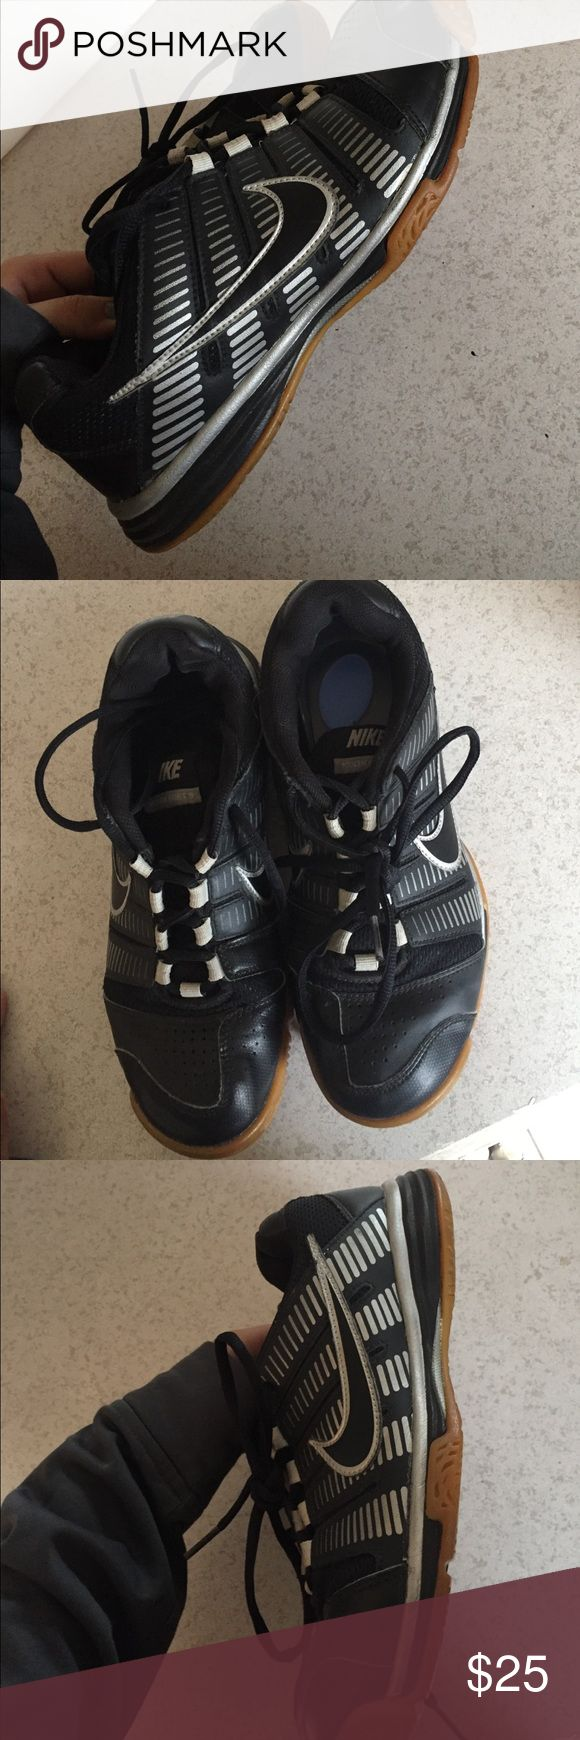 women's size 9 multi court shoes women's size 9 Nike Multicourts. were used for a season of indoor volleyball, but can be used to play any court sport! very good condition Nike Shoes Athletic Shoes